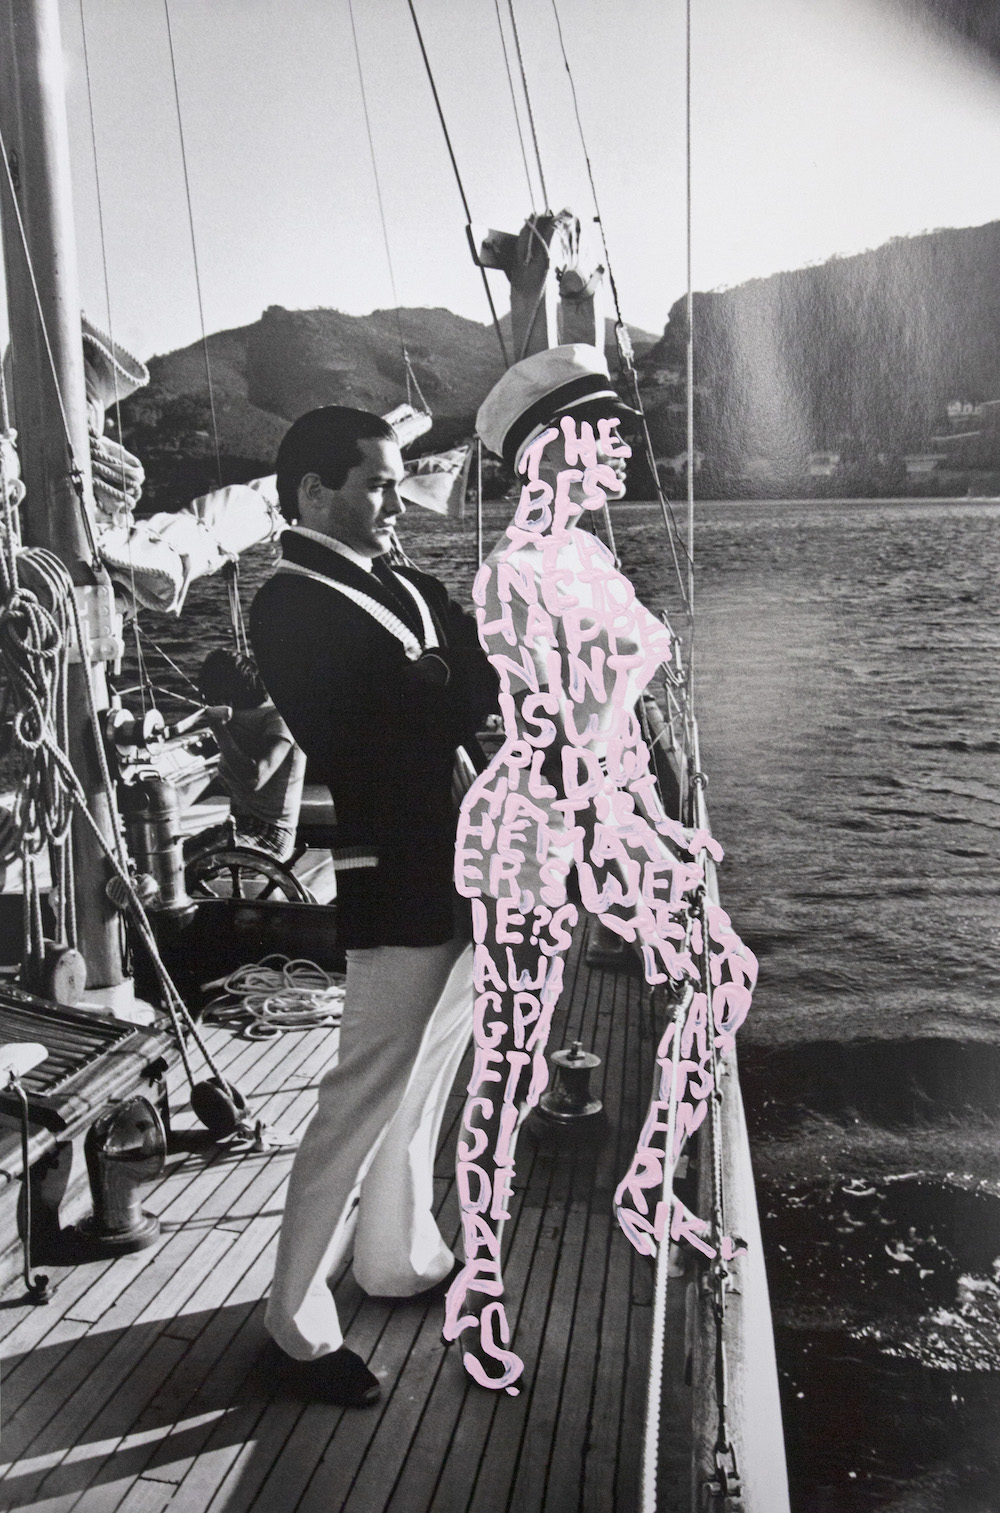 work by betty tompkins of photo of man and woman on sailboat with the woman covered in light pink words